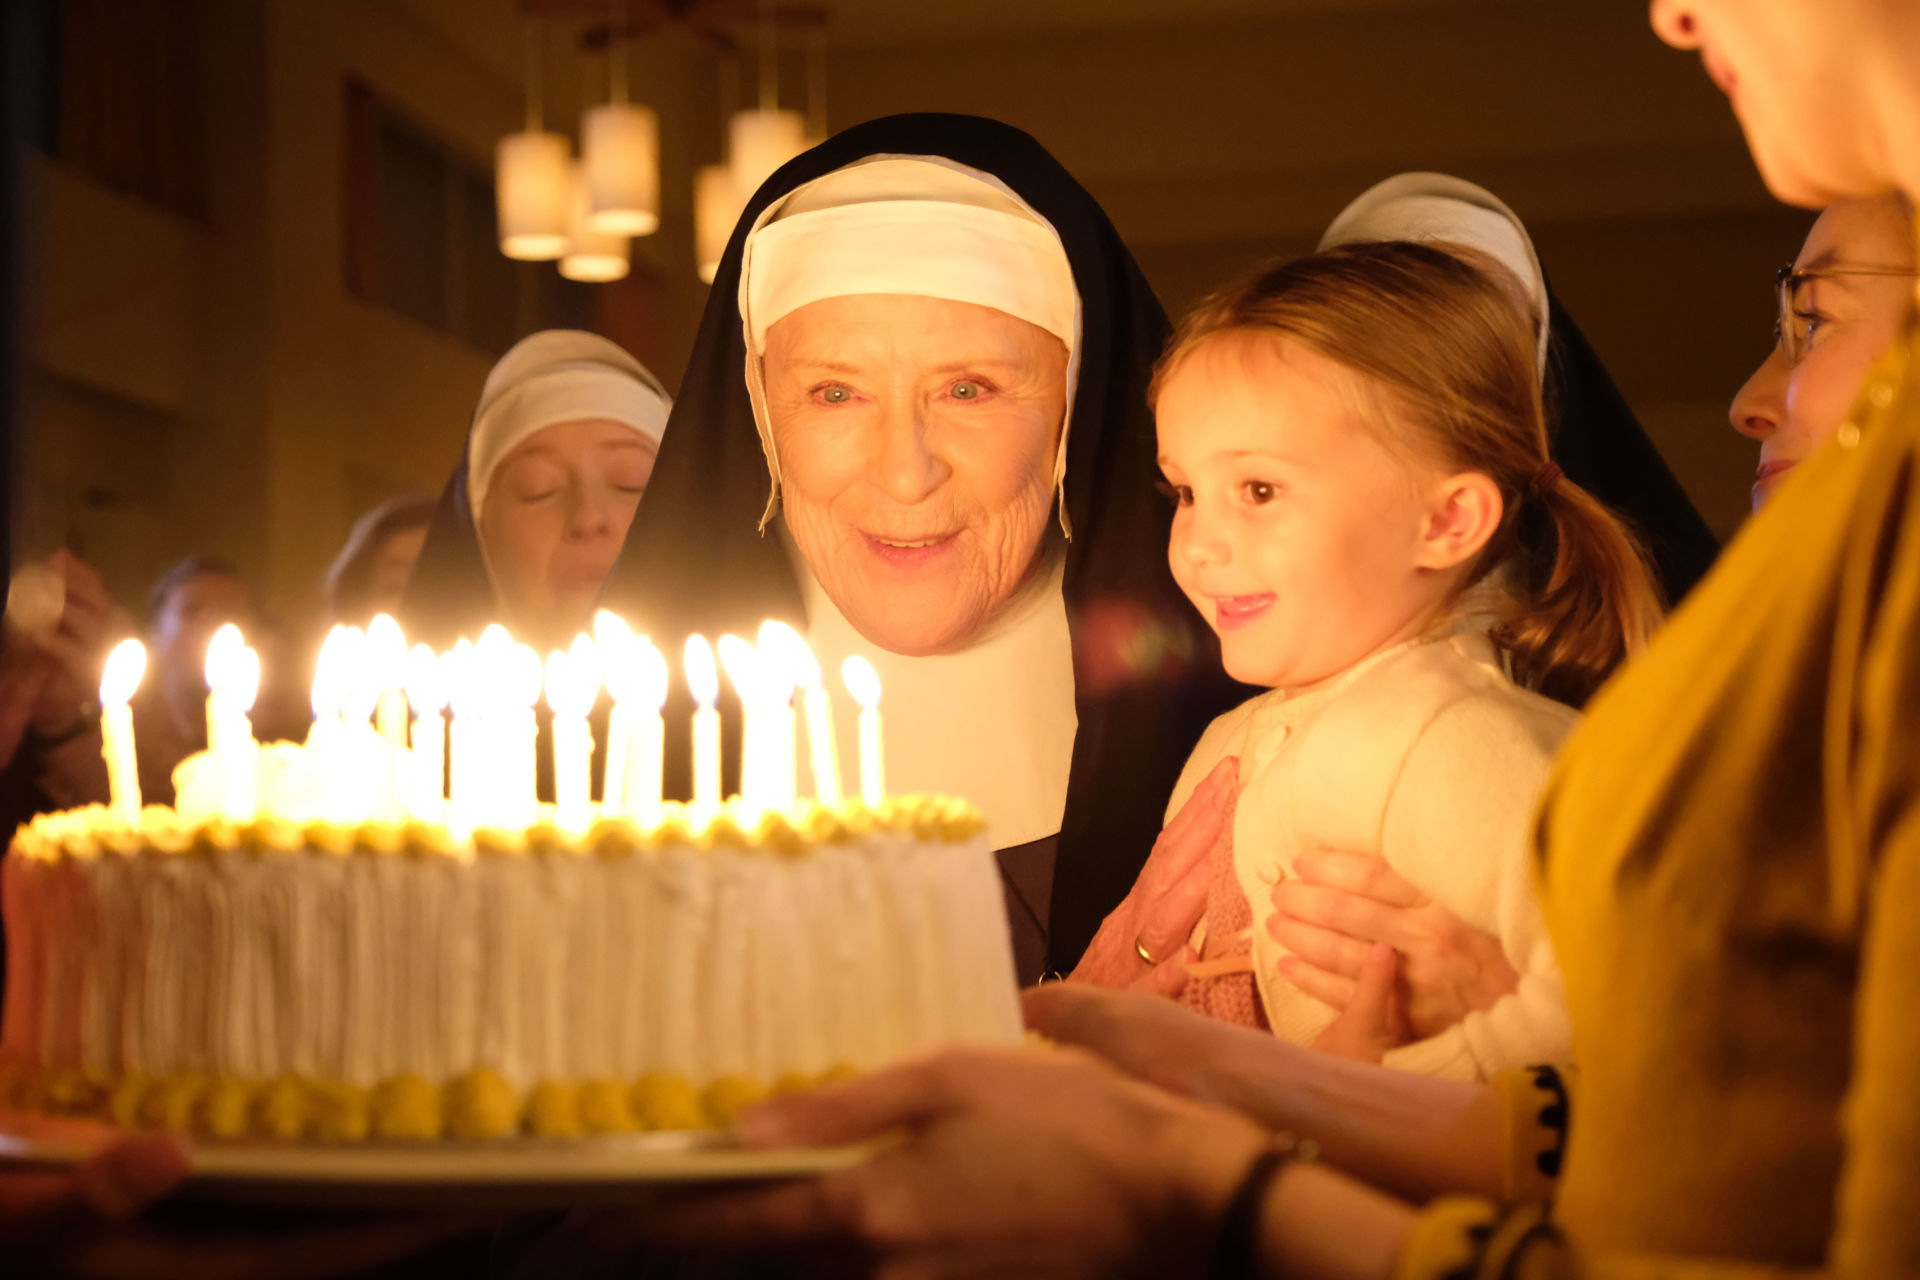 Call the Midwife Season 7 finale. Sister Monica Joan (JUDY PARFITT) with child and birthday cake